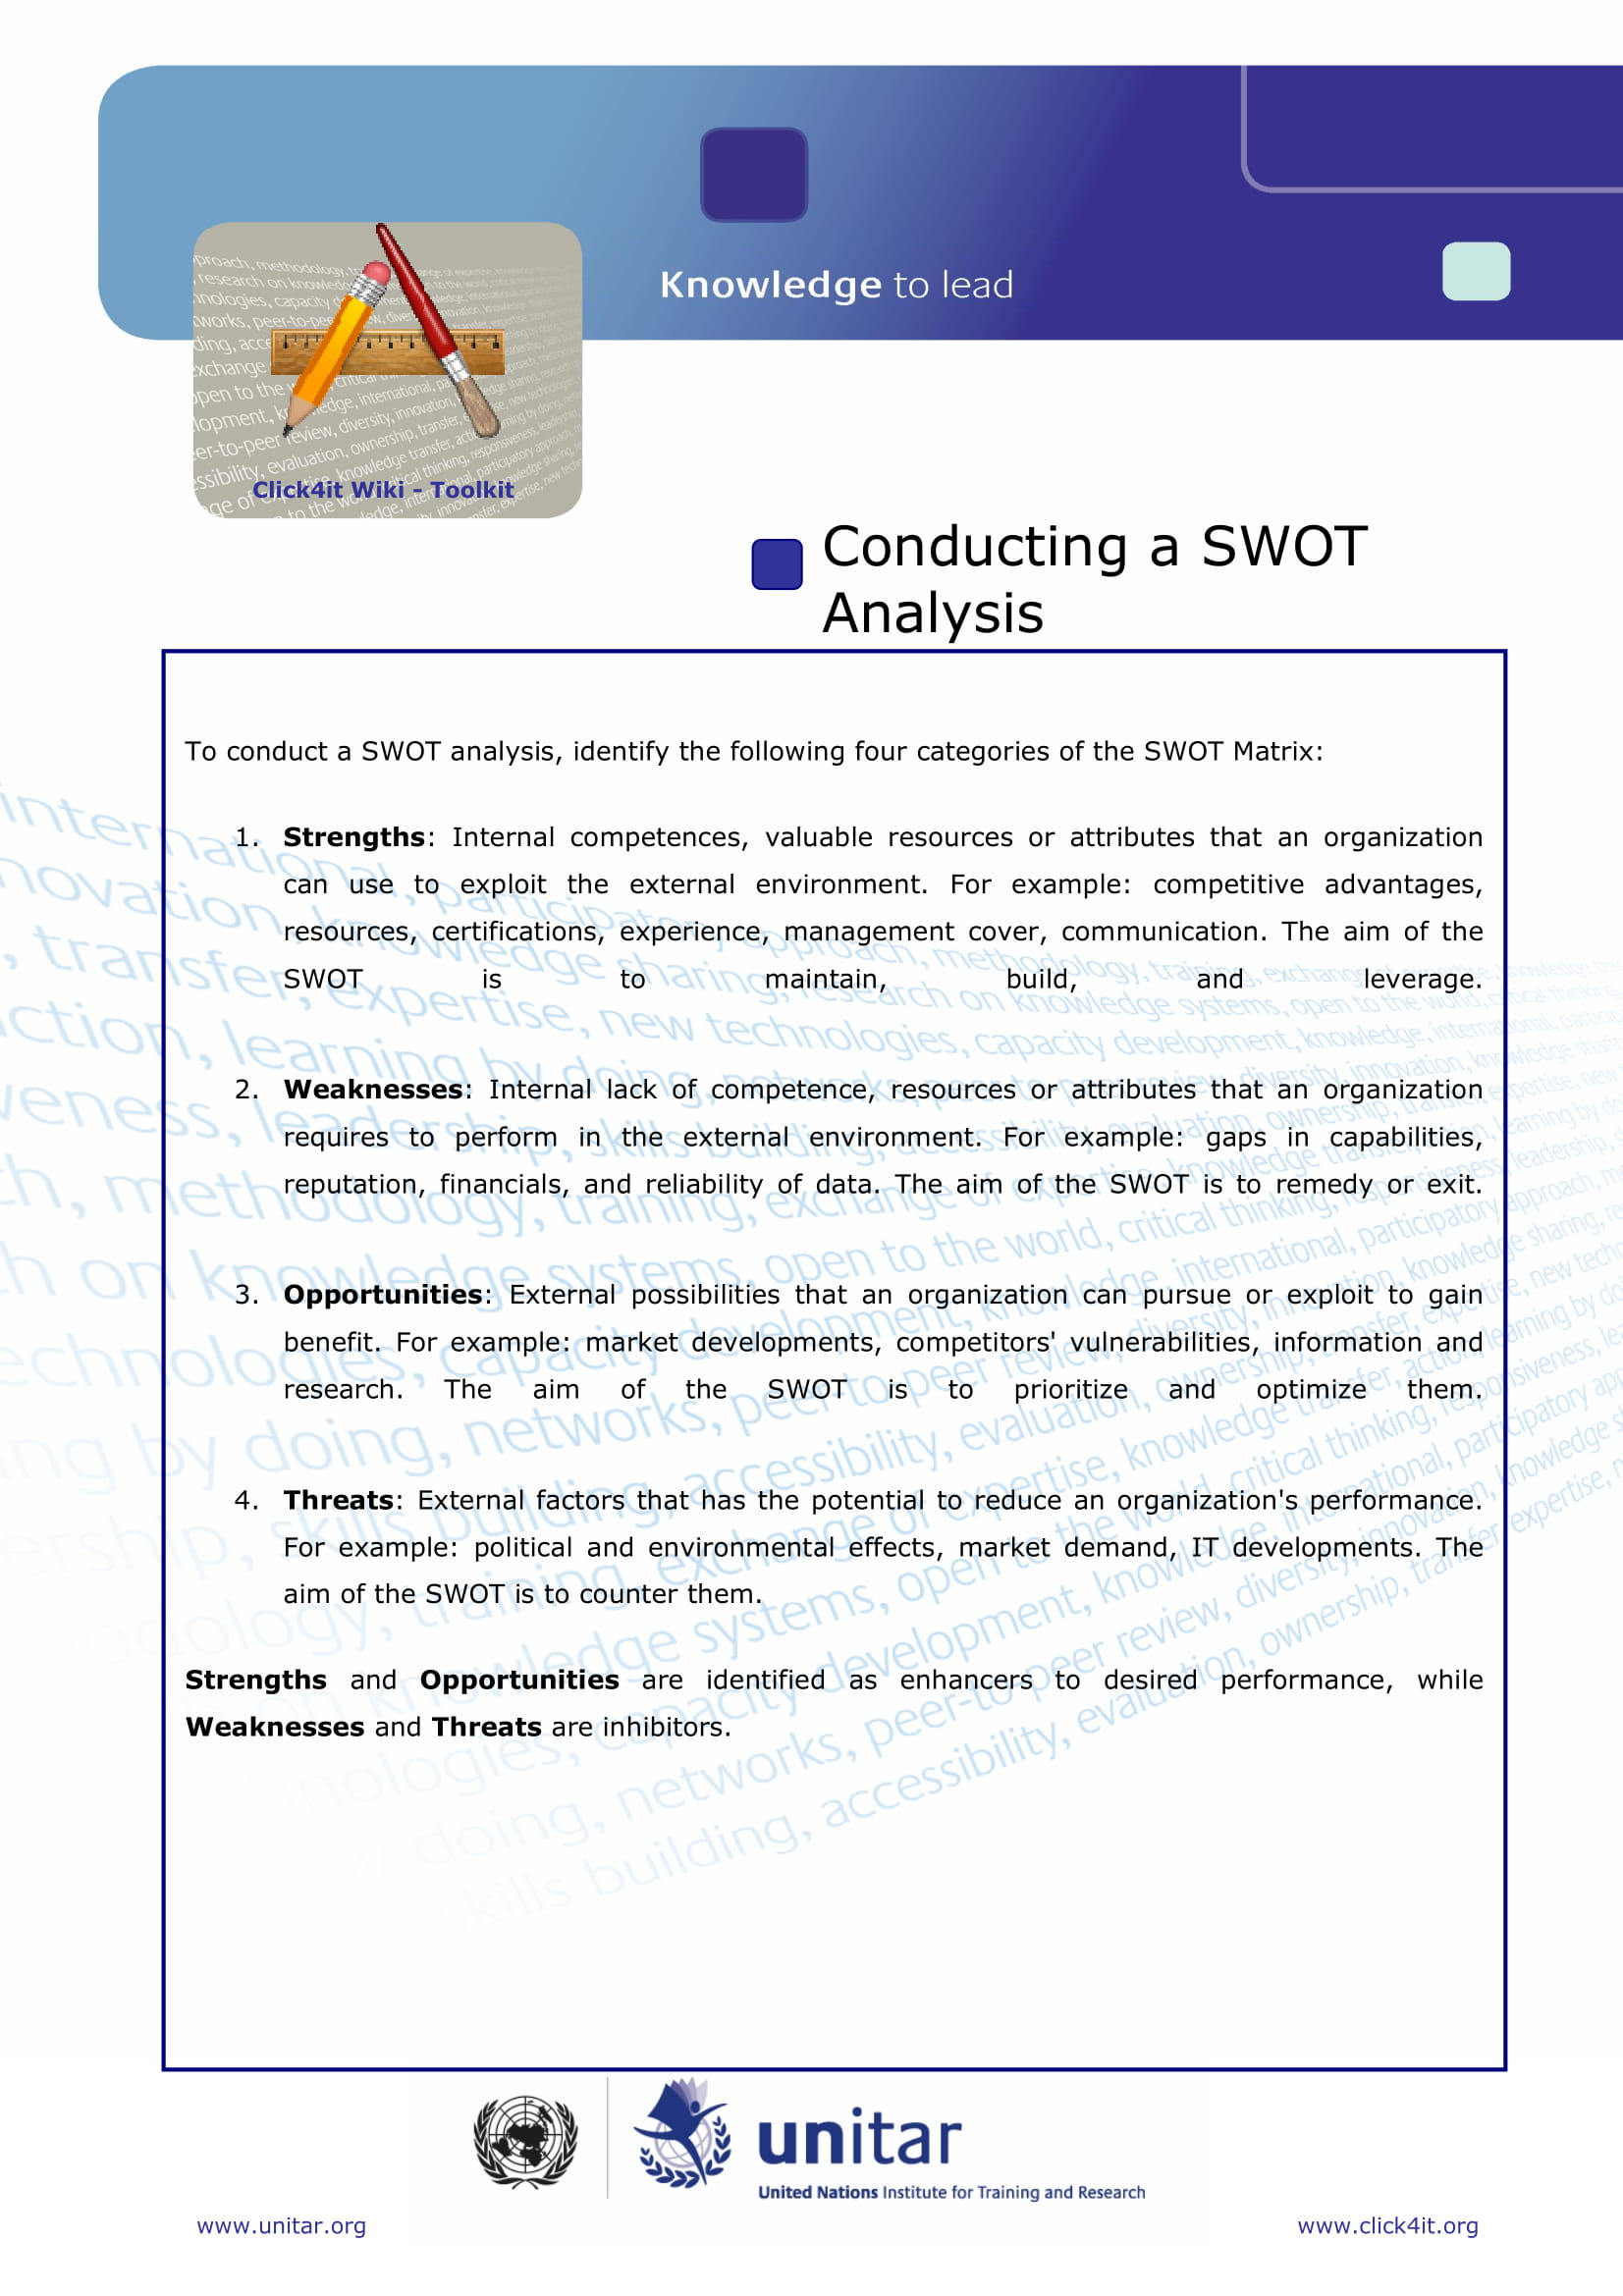 swot analysis toolkit with chart example 1